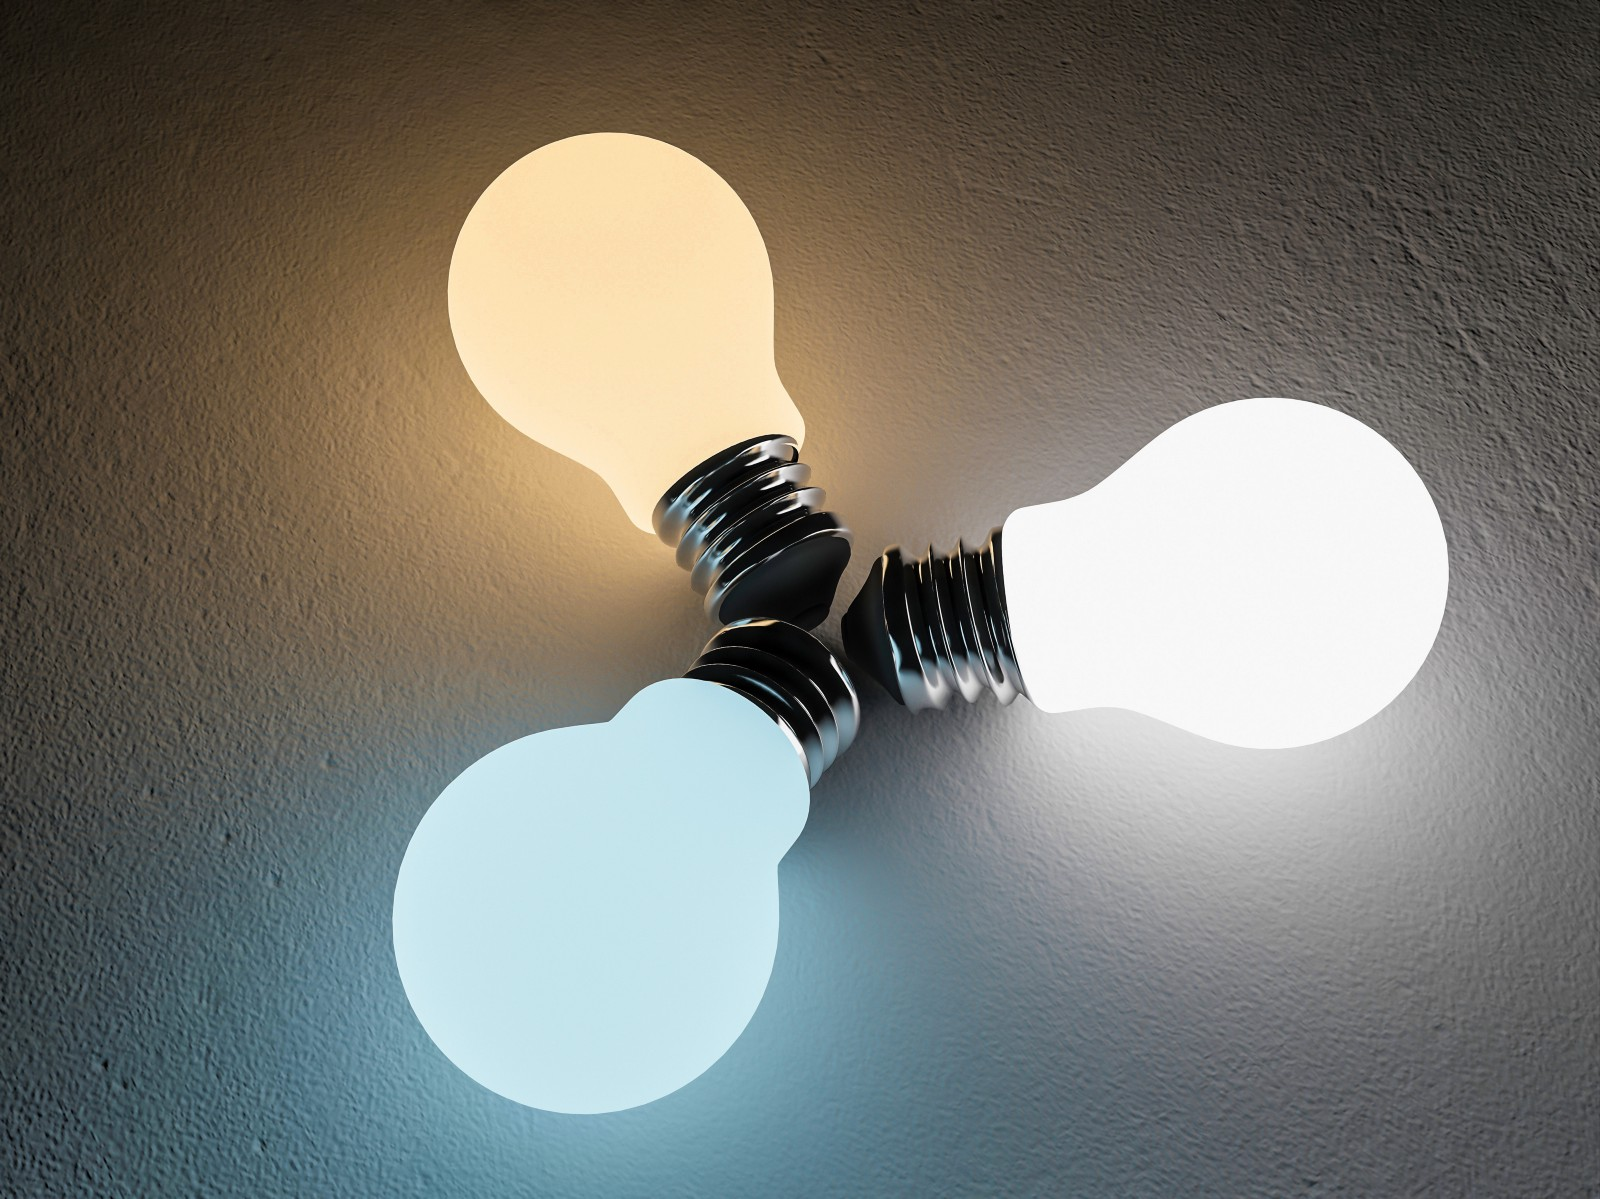 /the-trinity-3-specs-you-must-know-when-purchasing-led-light-bulbs-46abb9a6398d feature image